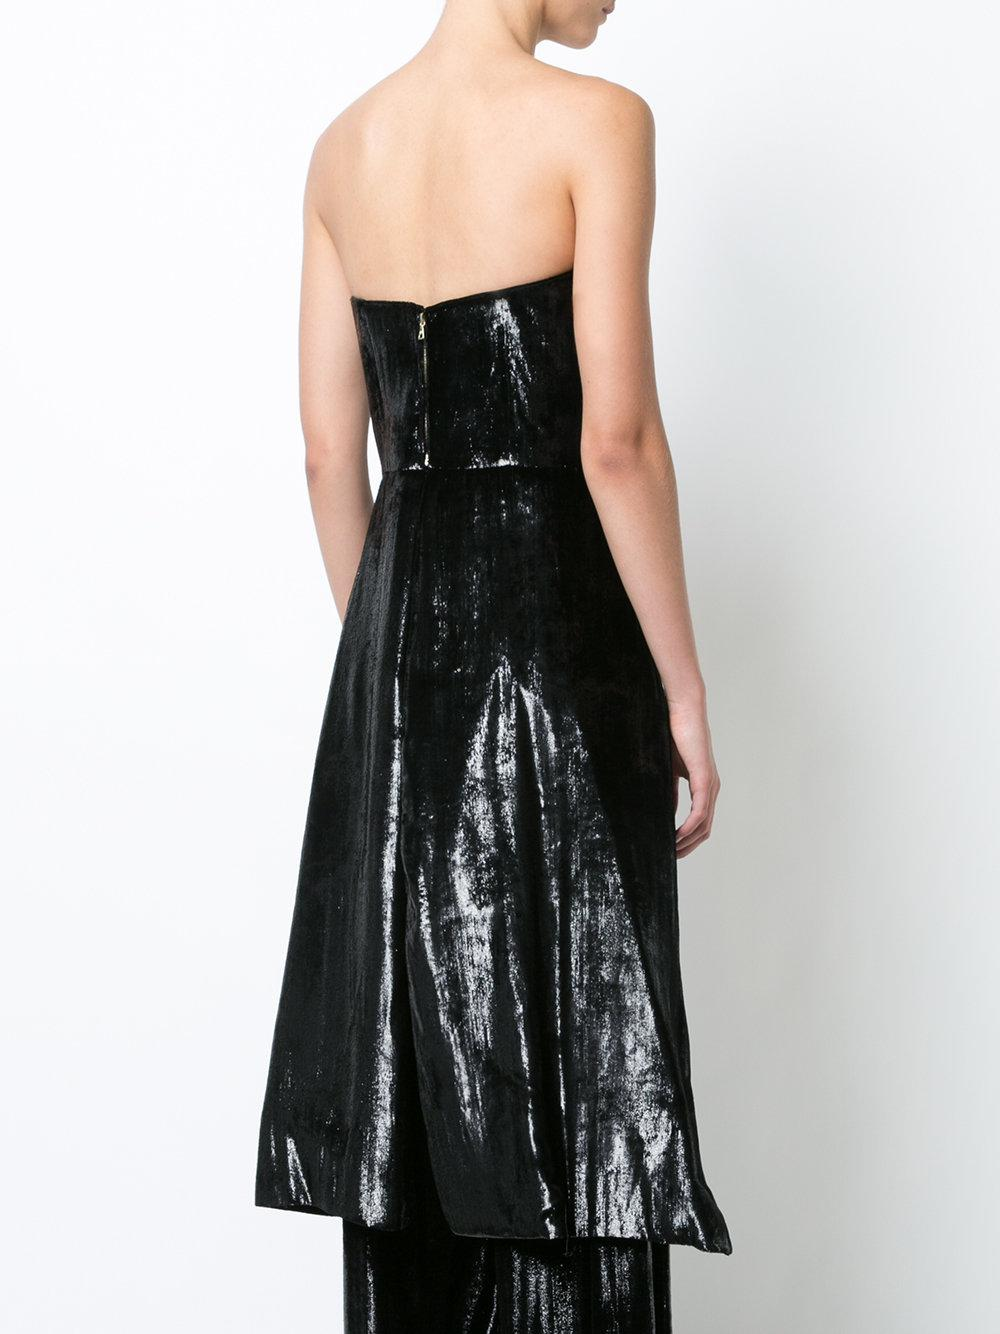 e64eea4123 Lyst - Christian Siriano High Low Strapless Top in Black